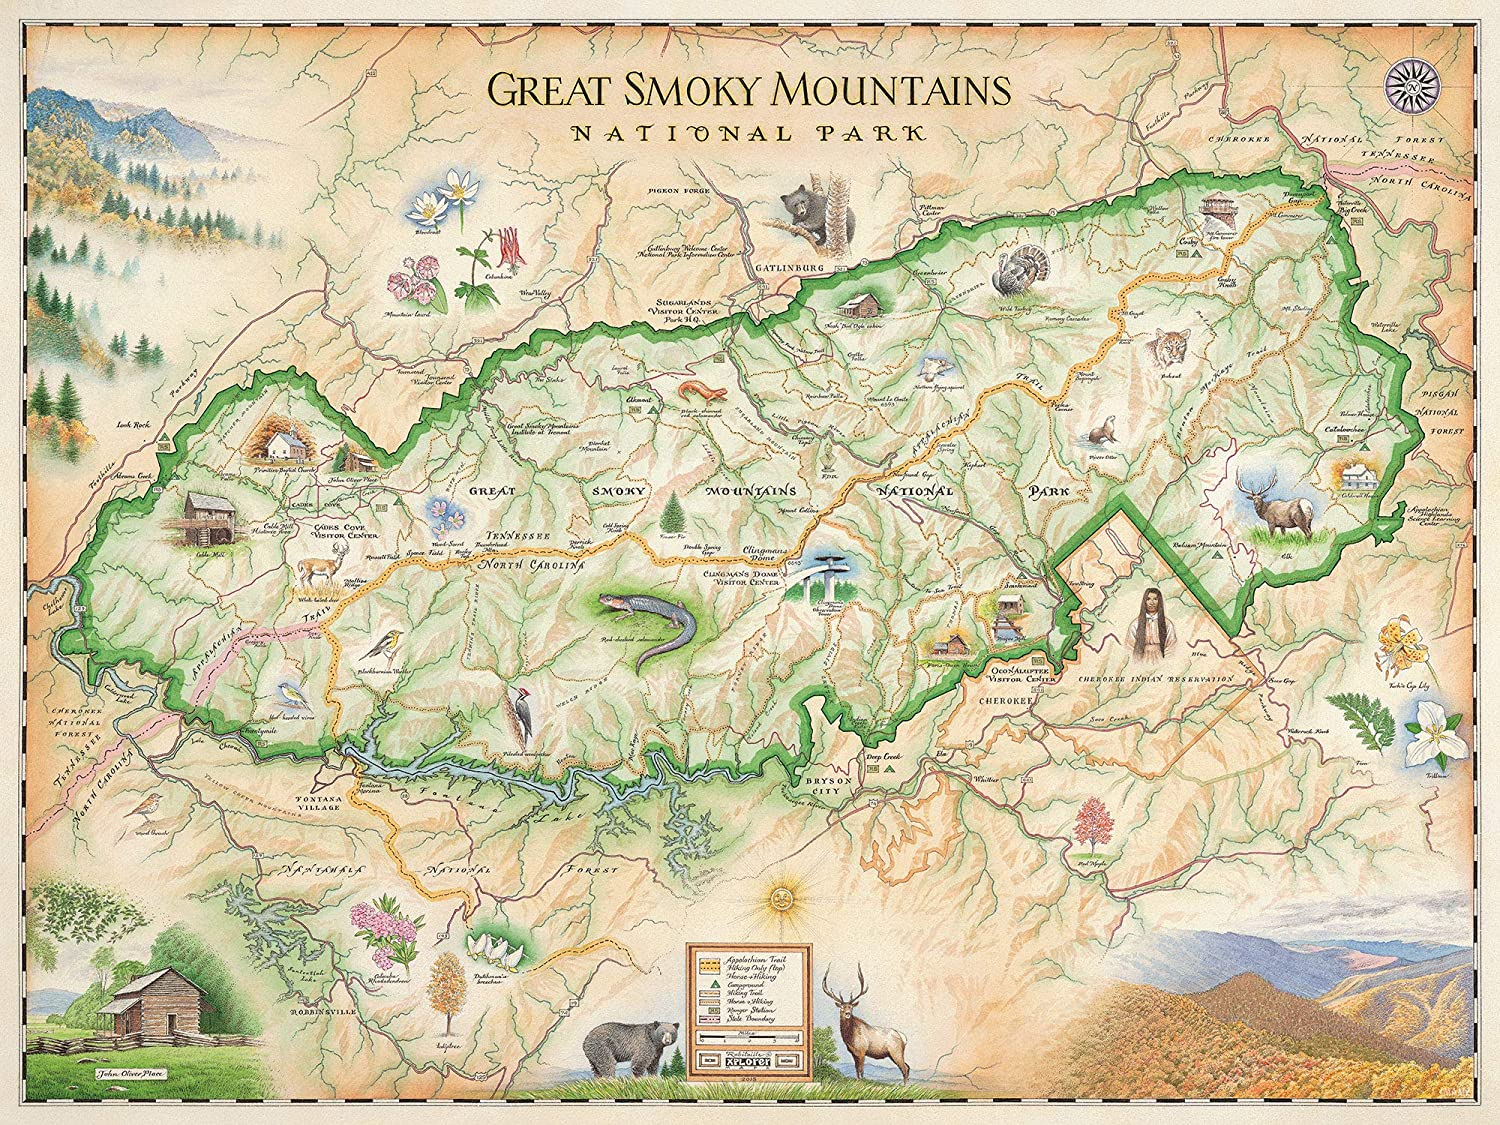 Great Smoky Mountains Map Amazon.com: Xplorer Maps Great Smoky Mountain National Park Map